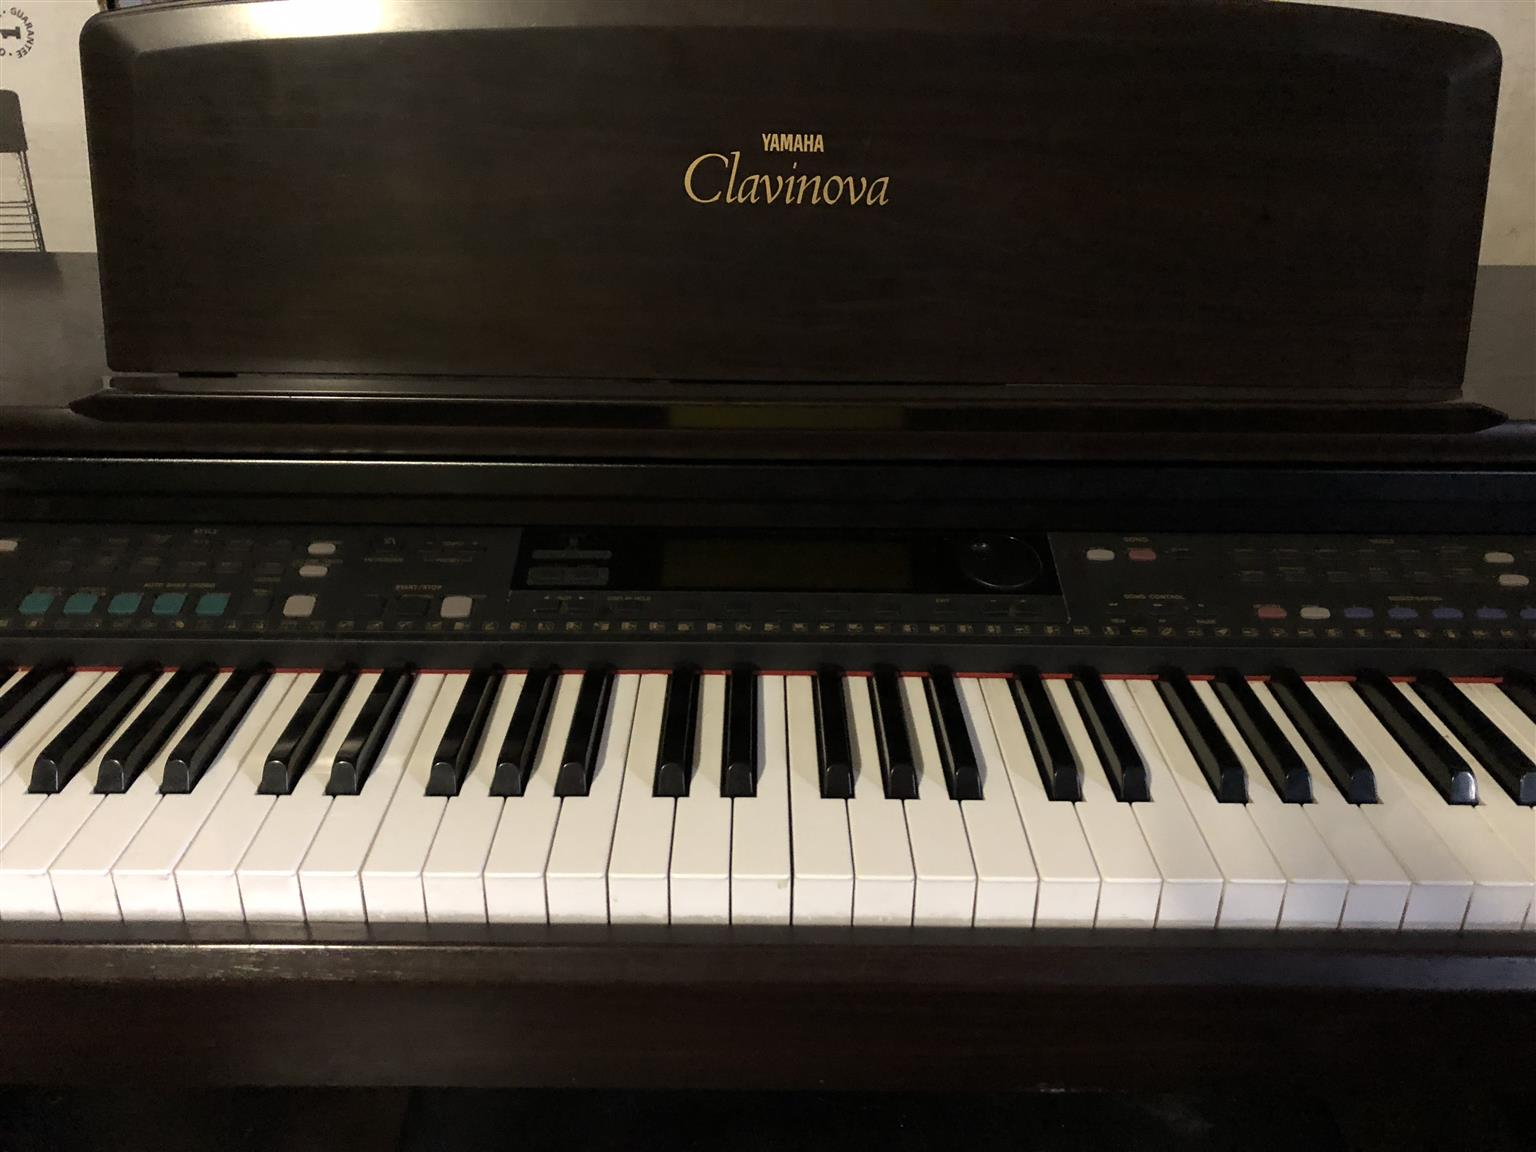 Yamaha Clavinova Piano for sale